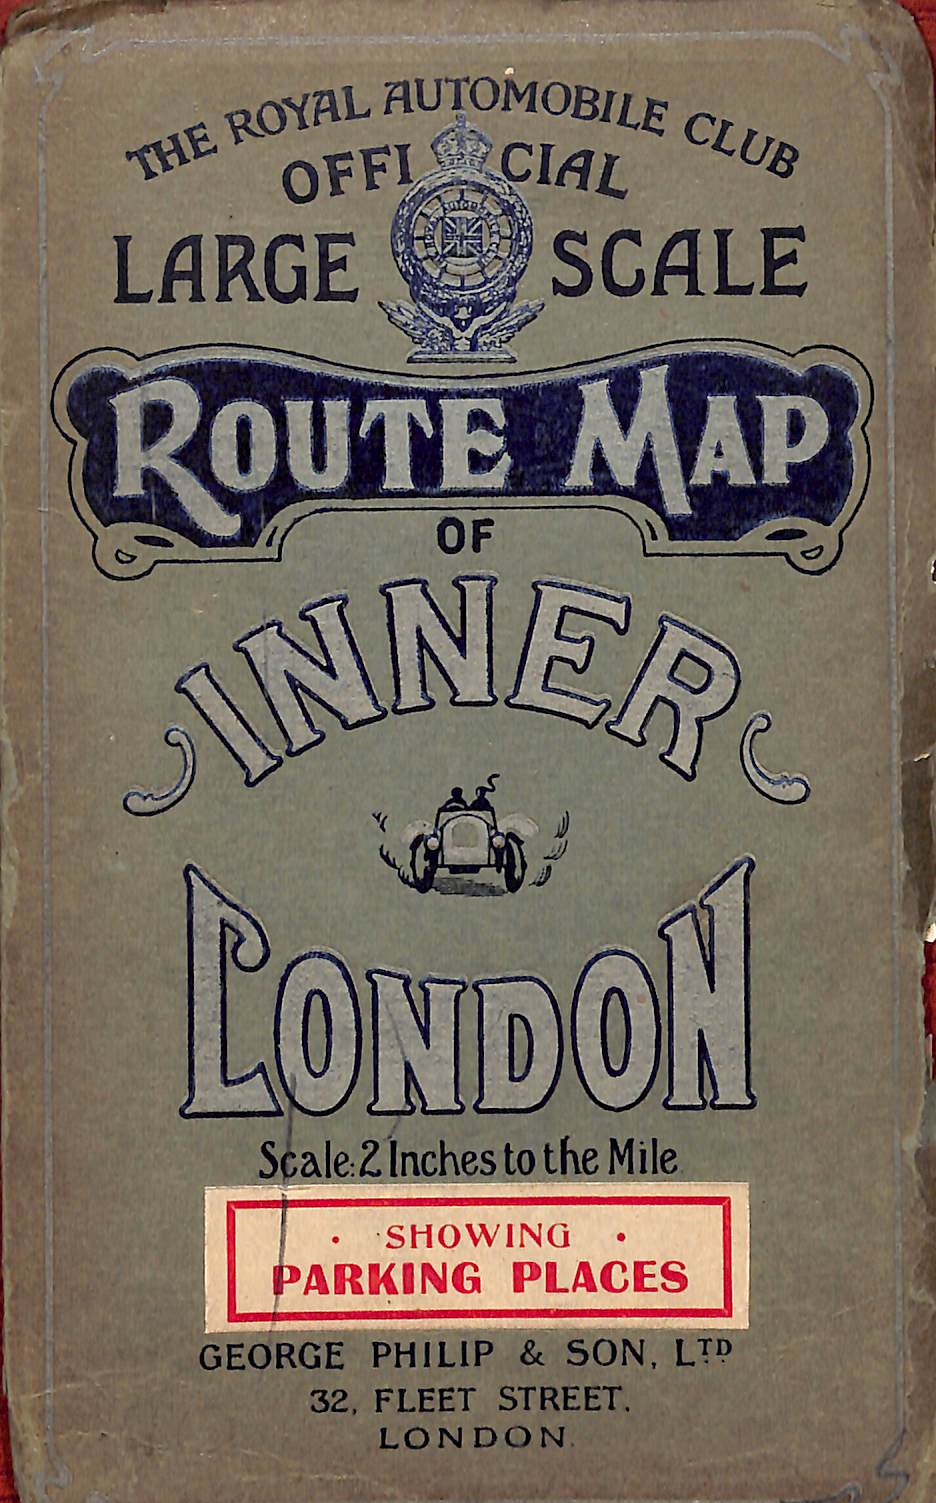 The Royal Automobile Club Official Large Scale Route Map of Inner London 1925